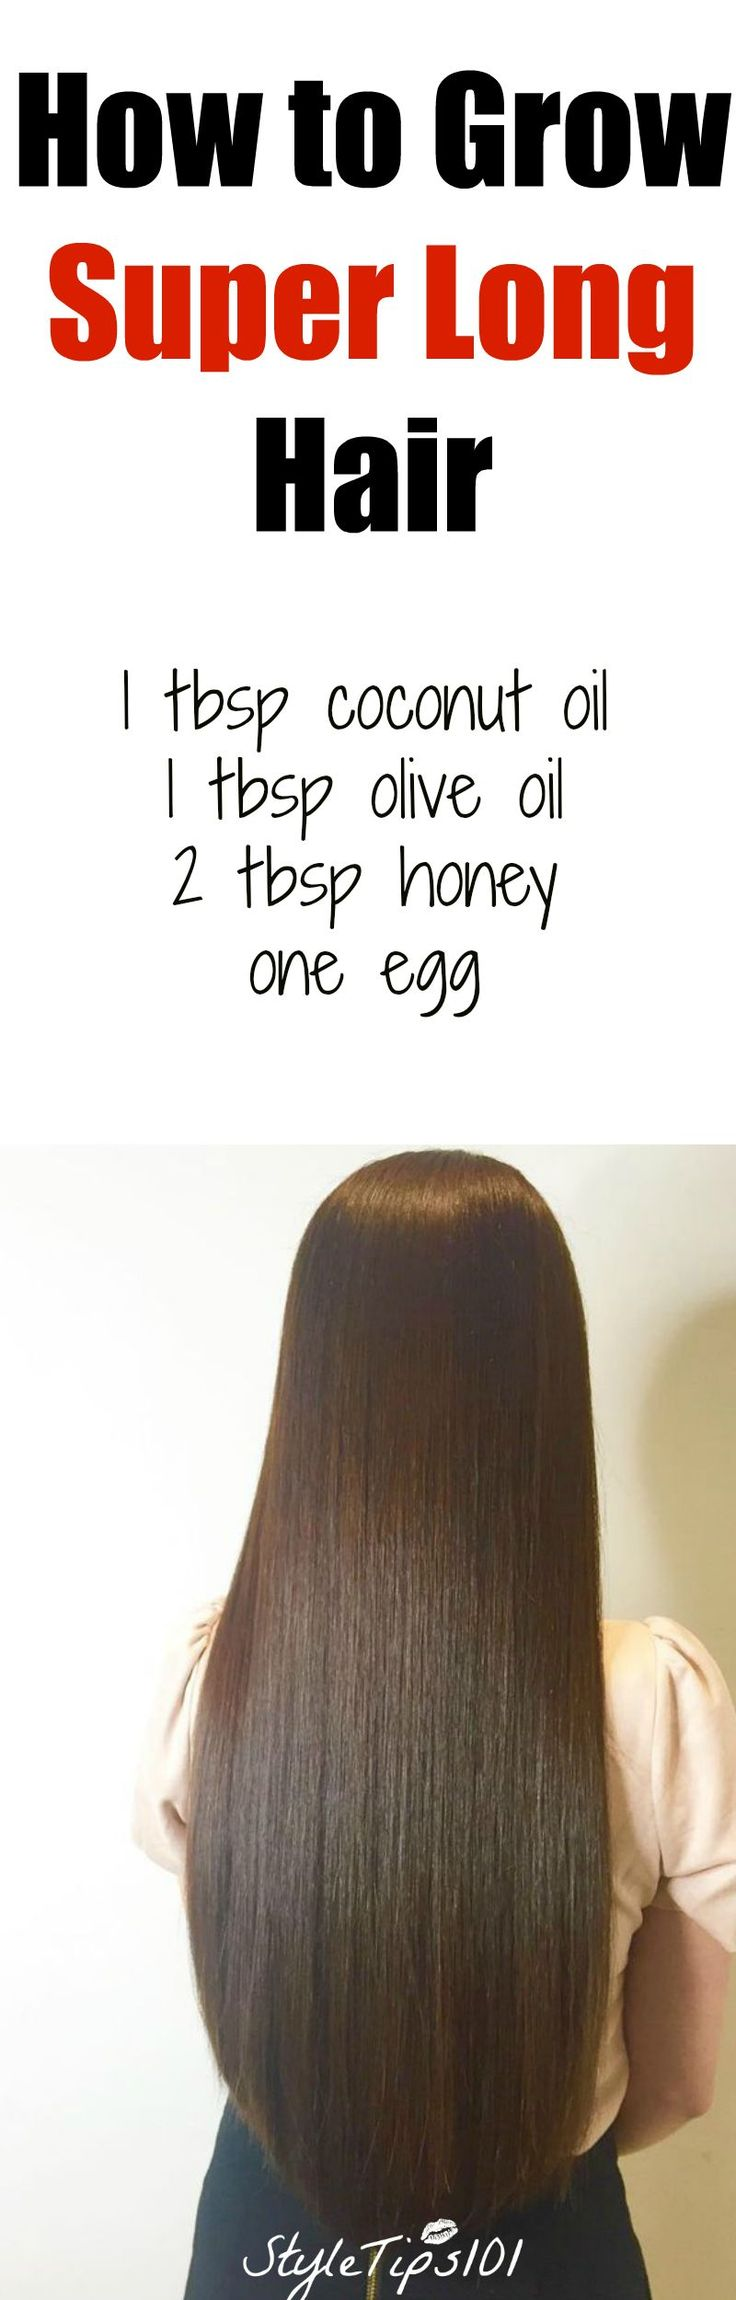 how to grow super long hair Everything to do with your hair.